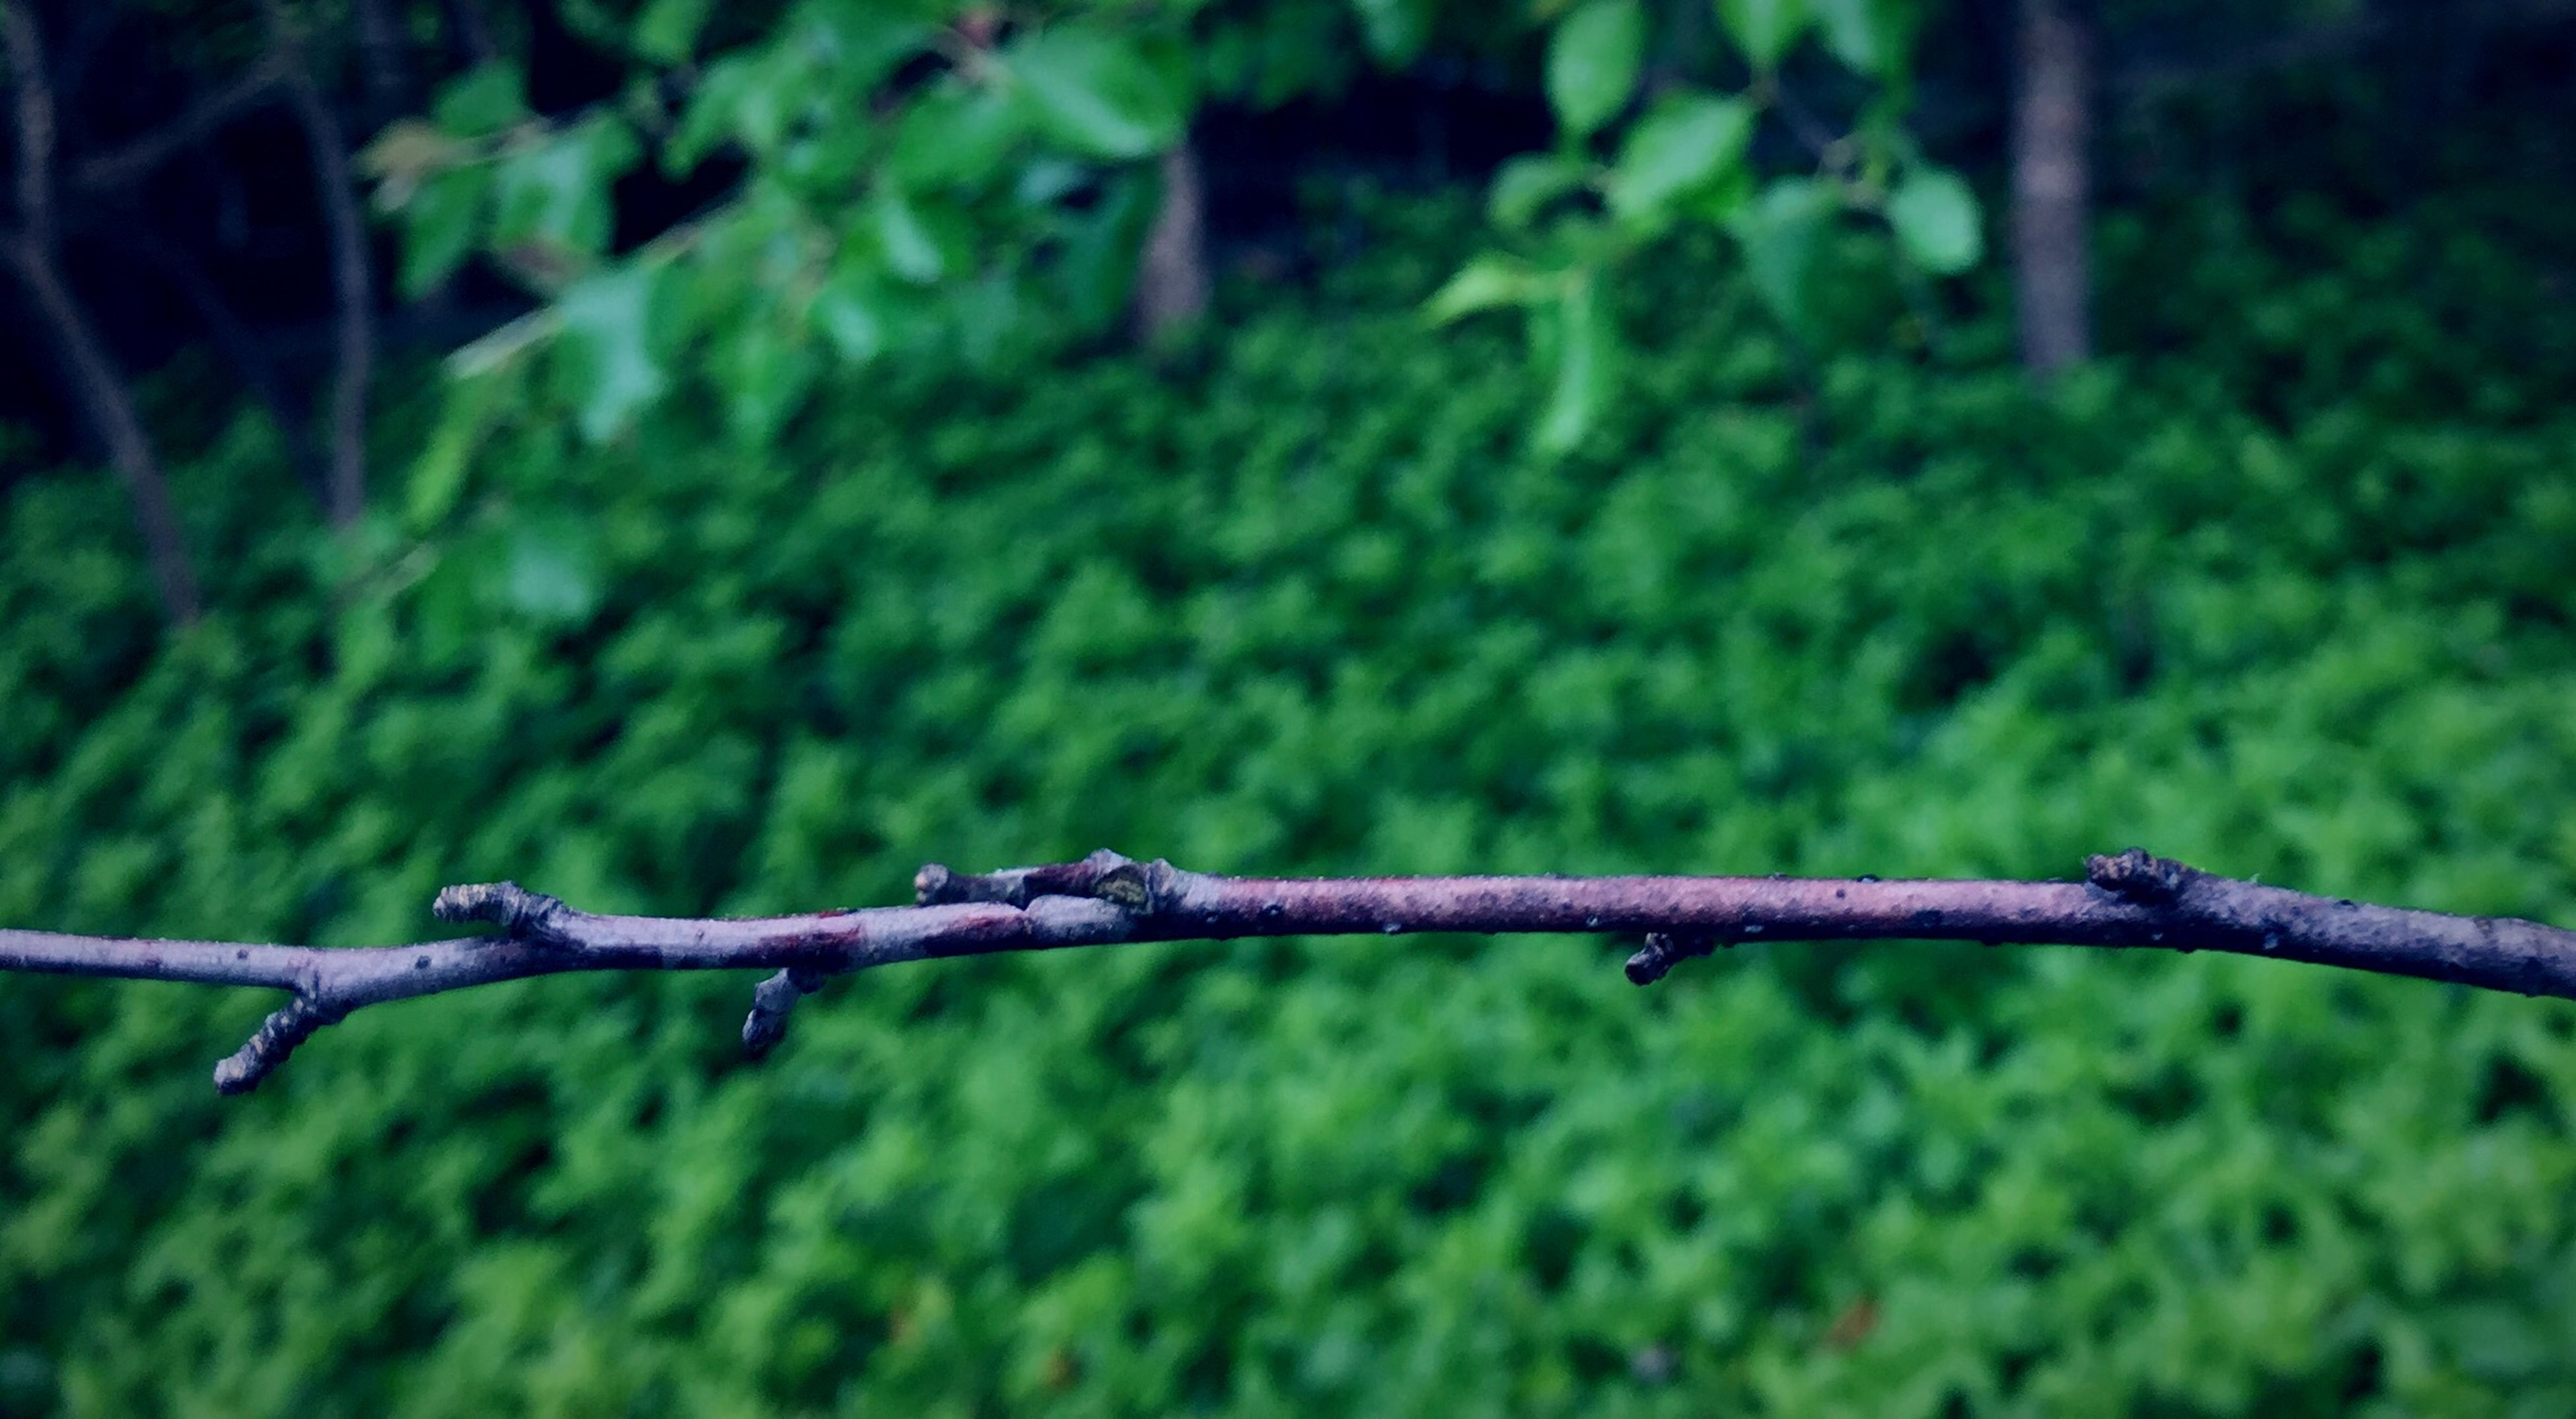 focus on foreground, close-up, green color, fence, nature, selective focus, barbed wire, branch, protection, tranquility, growth, tree, safety, outdoors, day, forest, beauty in nature, metal, no people, security